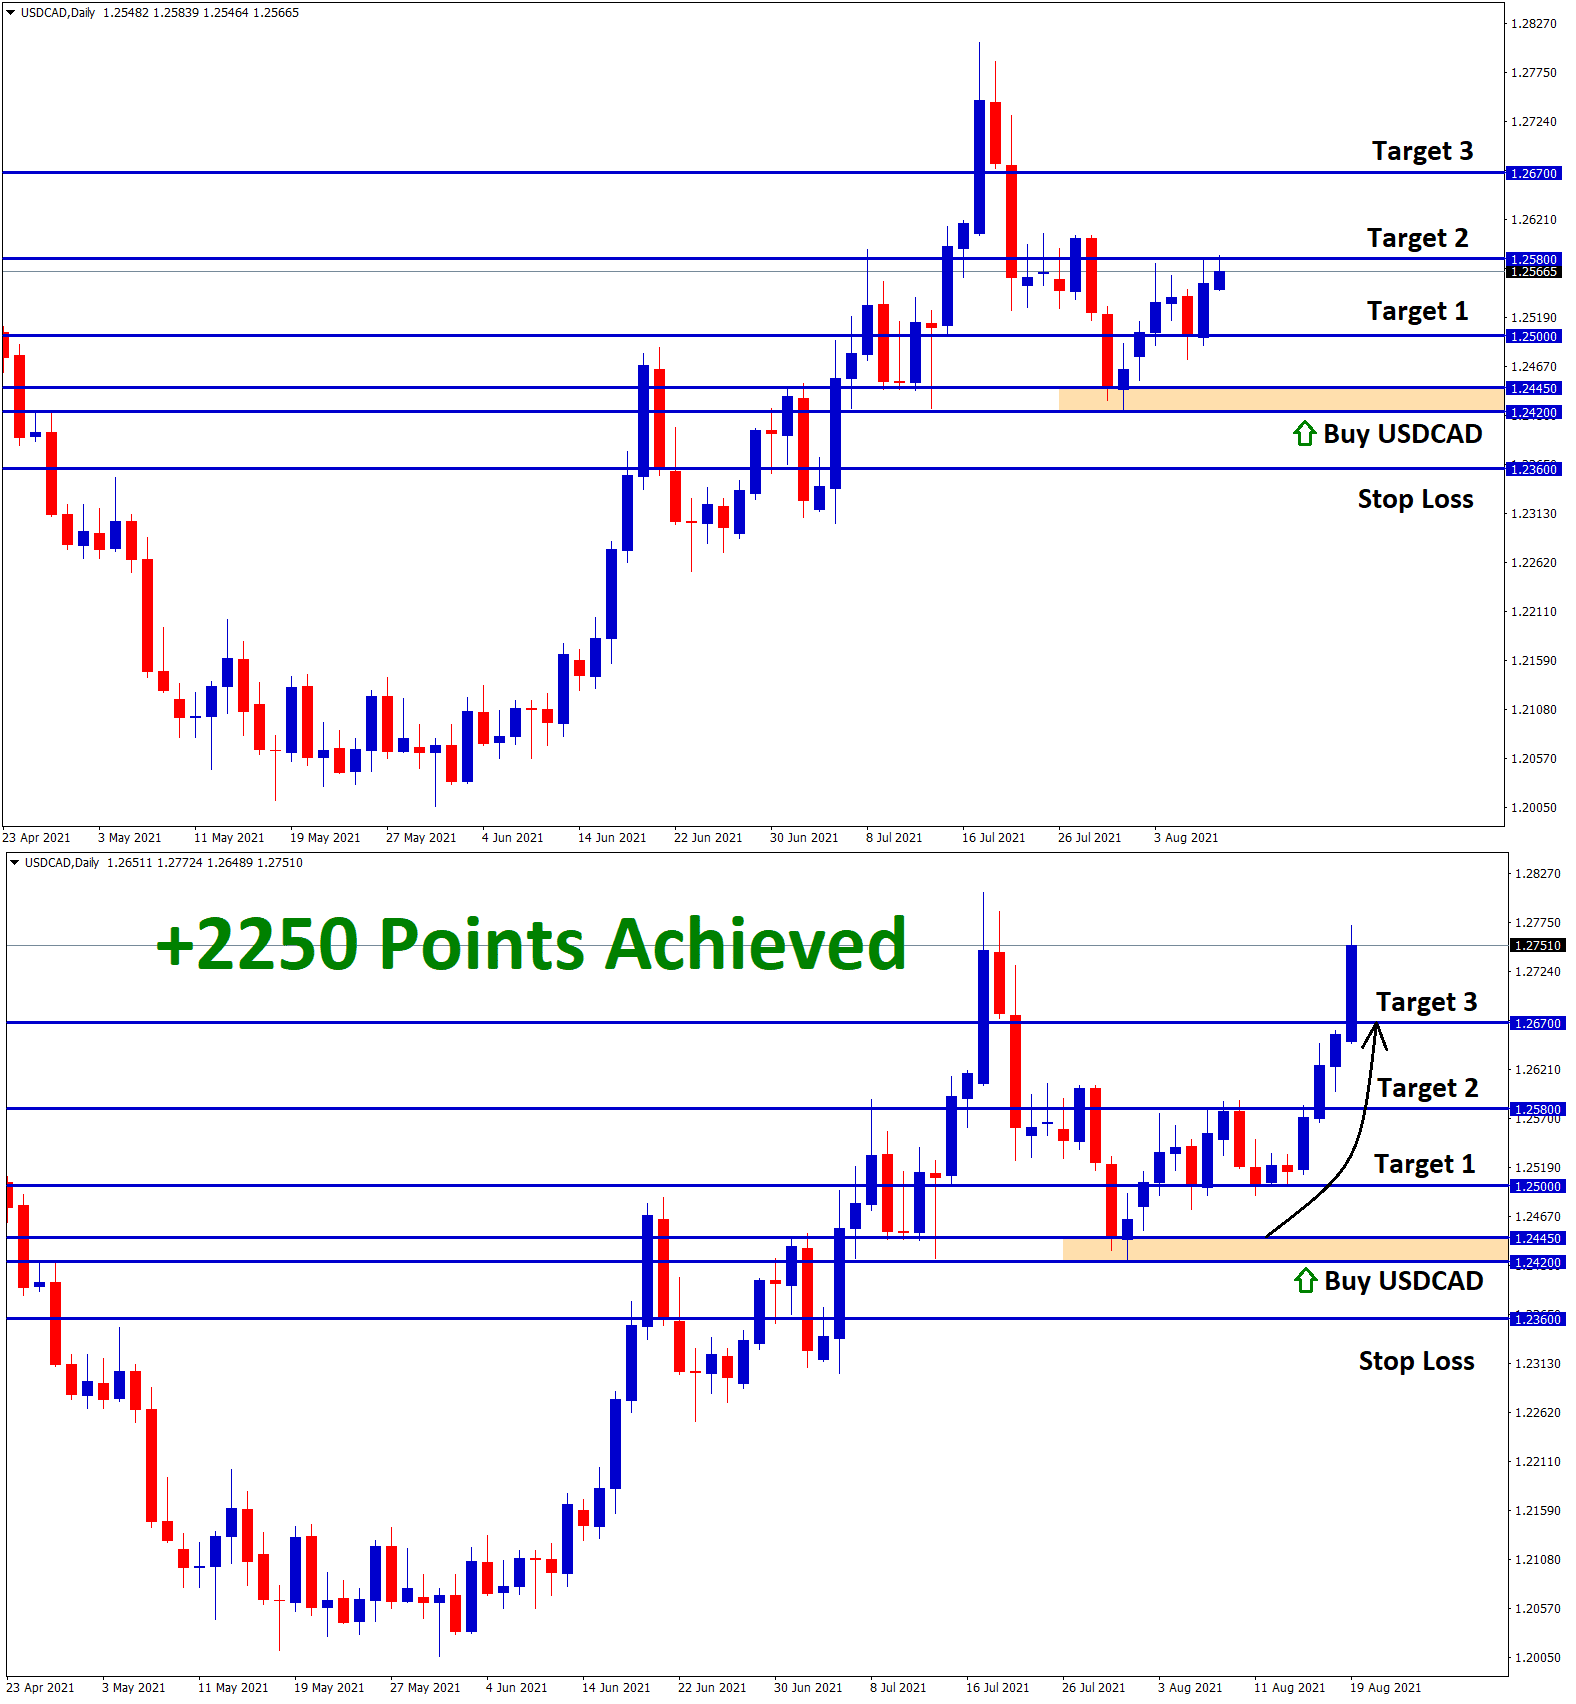 2250 Points achieved in USDCAD Jul30 T3 Aug19